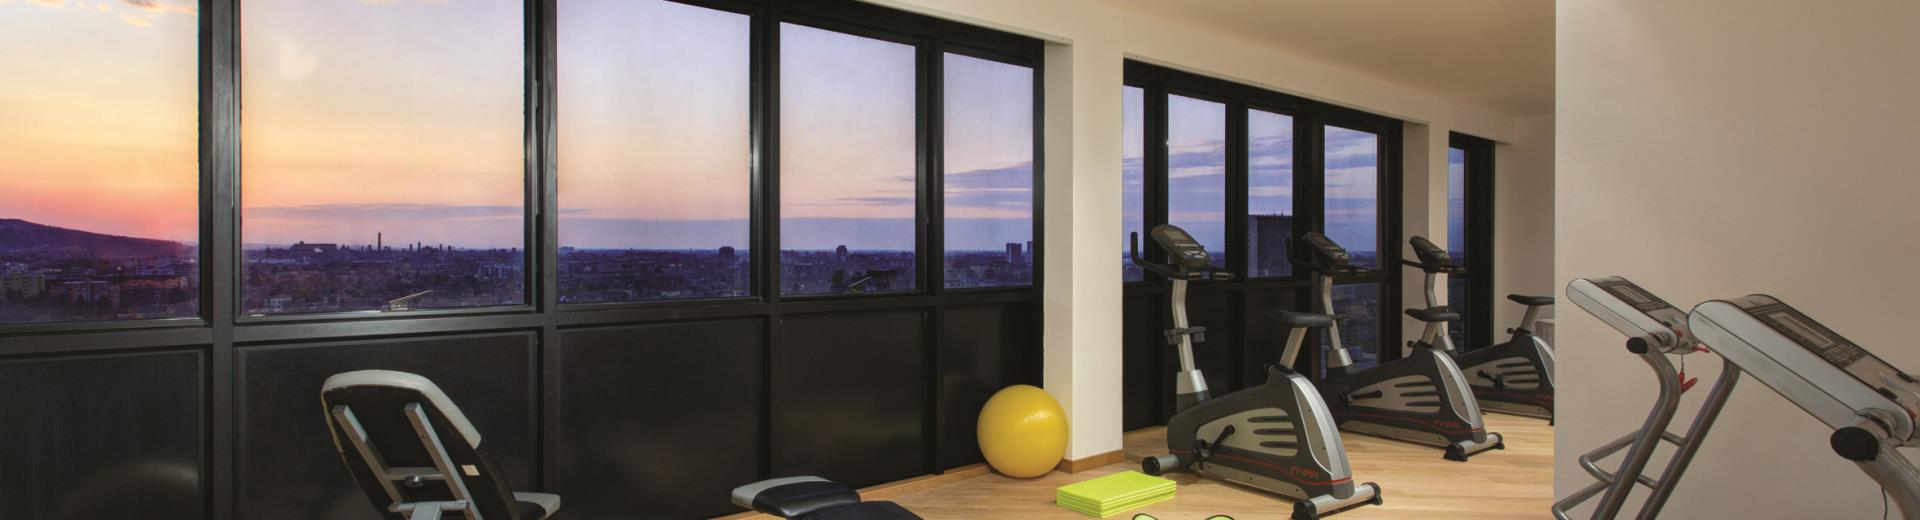 Best Westen Plus Tower Hotel Bologna - Sala Fitness Panoramica